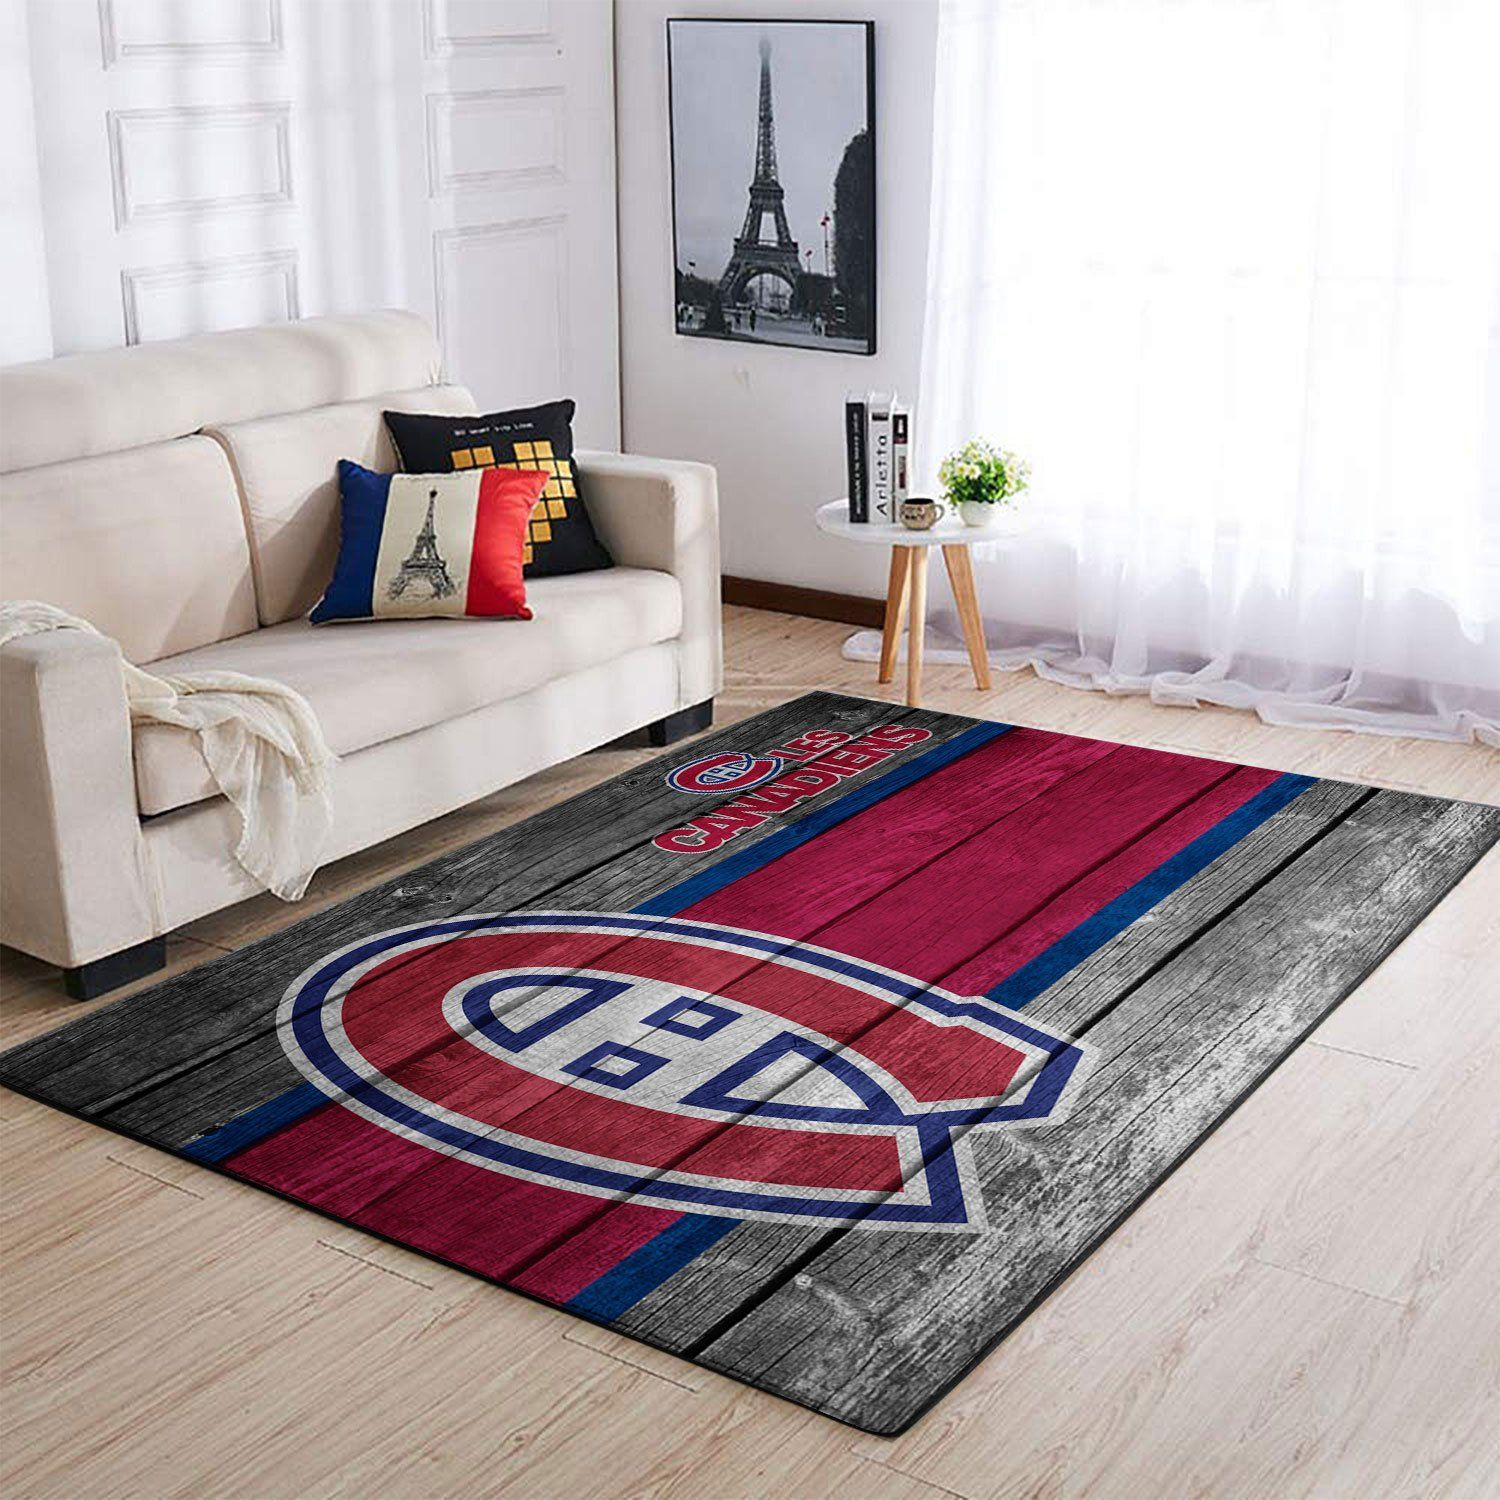 Amazon Montr?al Canadiens Living Room Area No4001 Rug